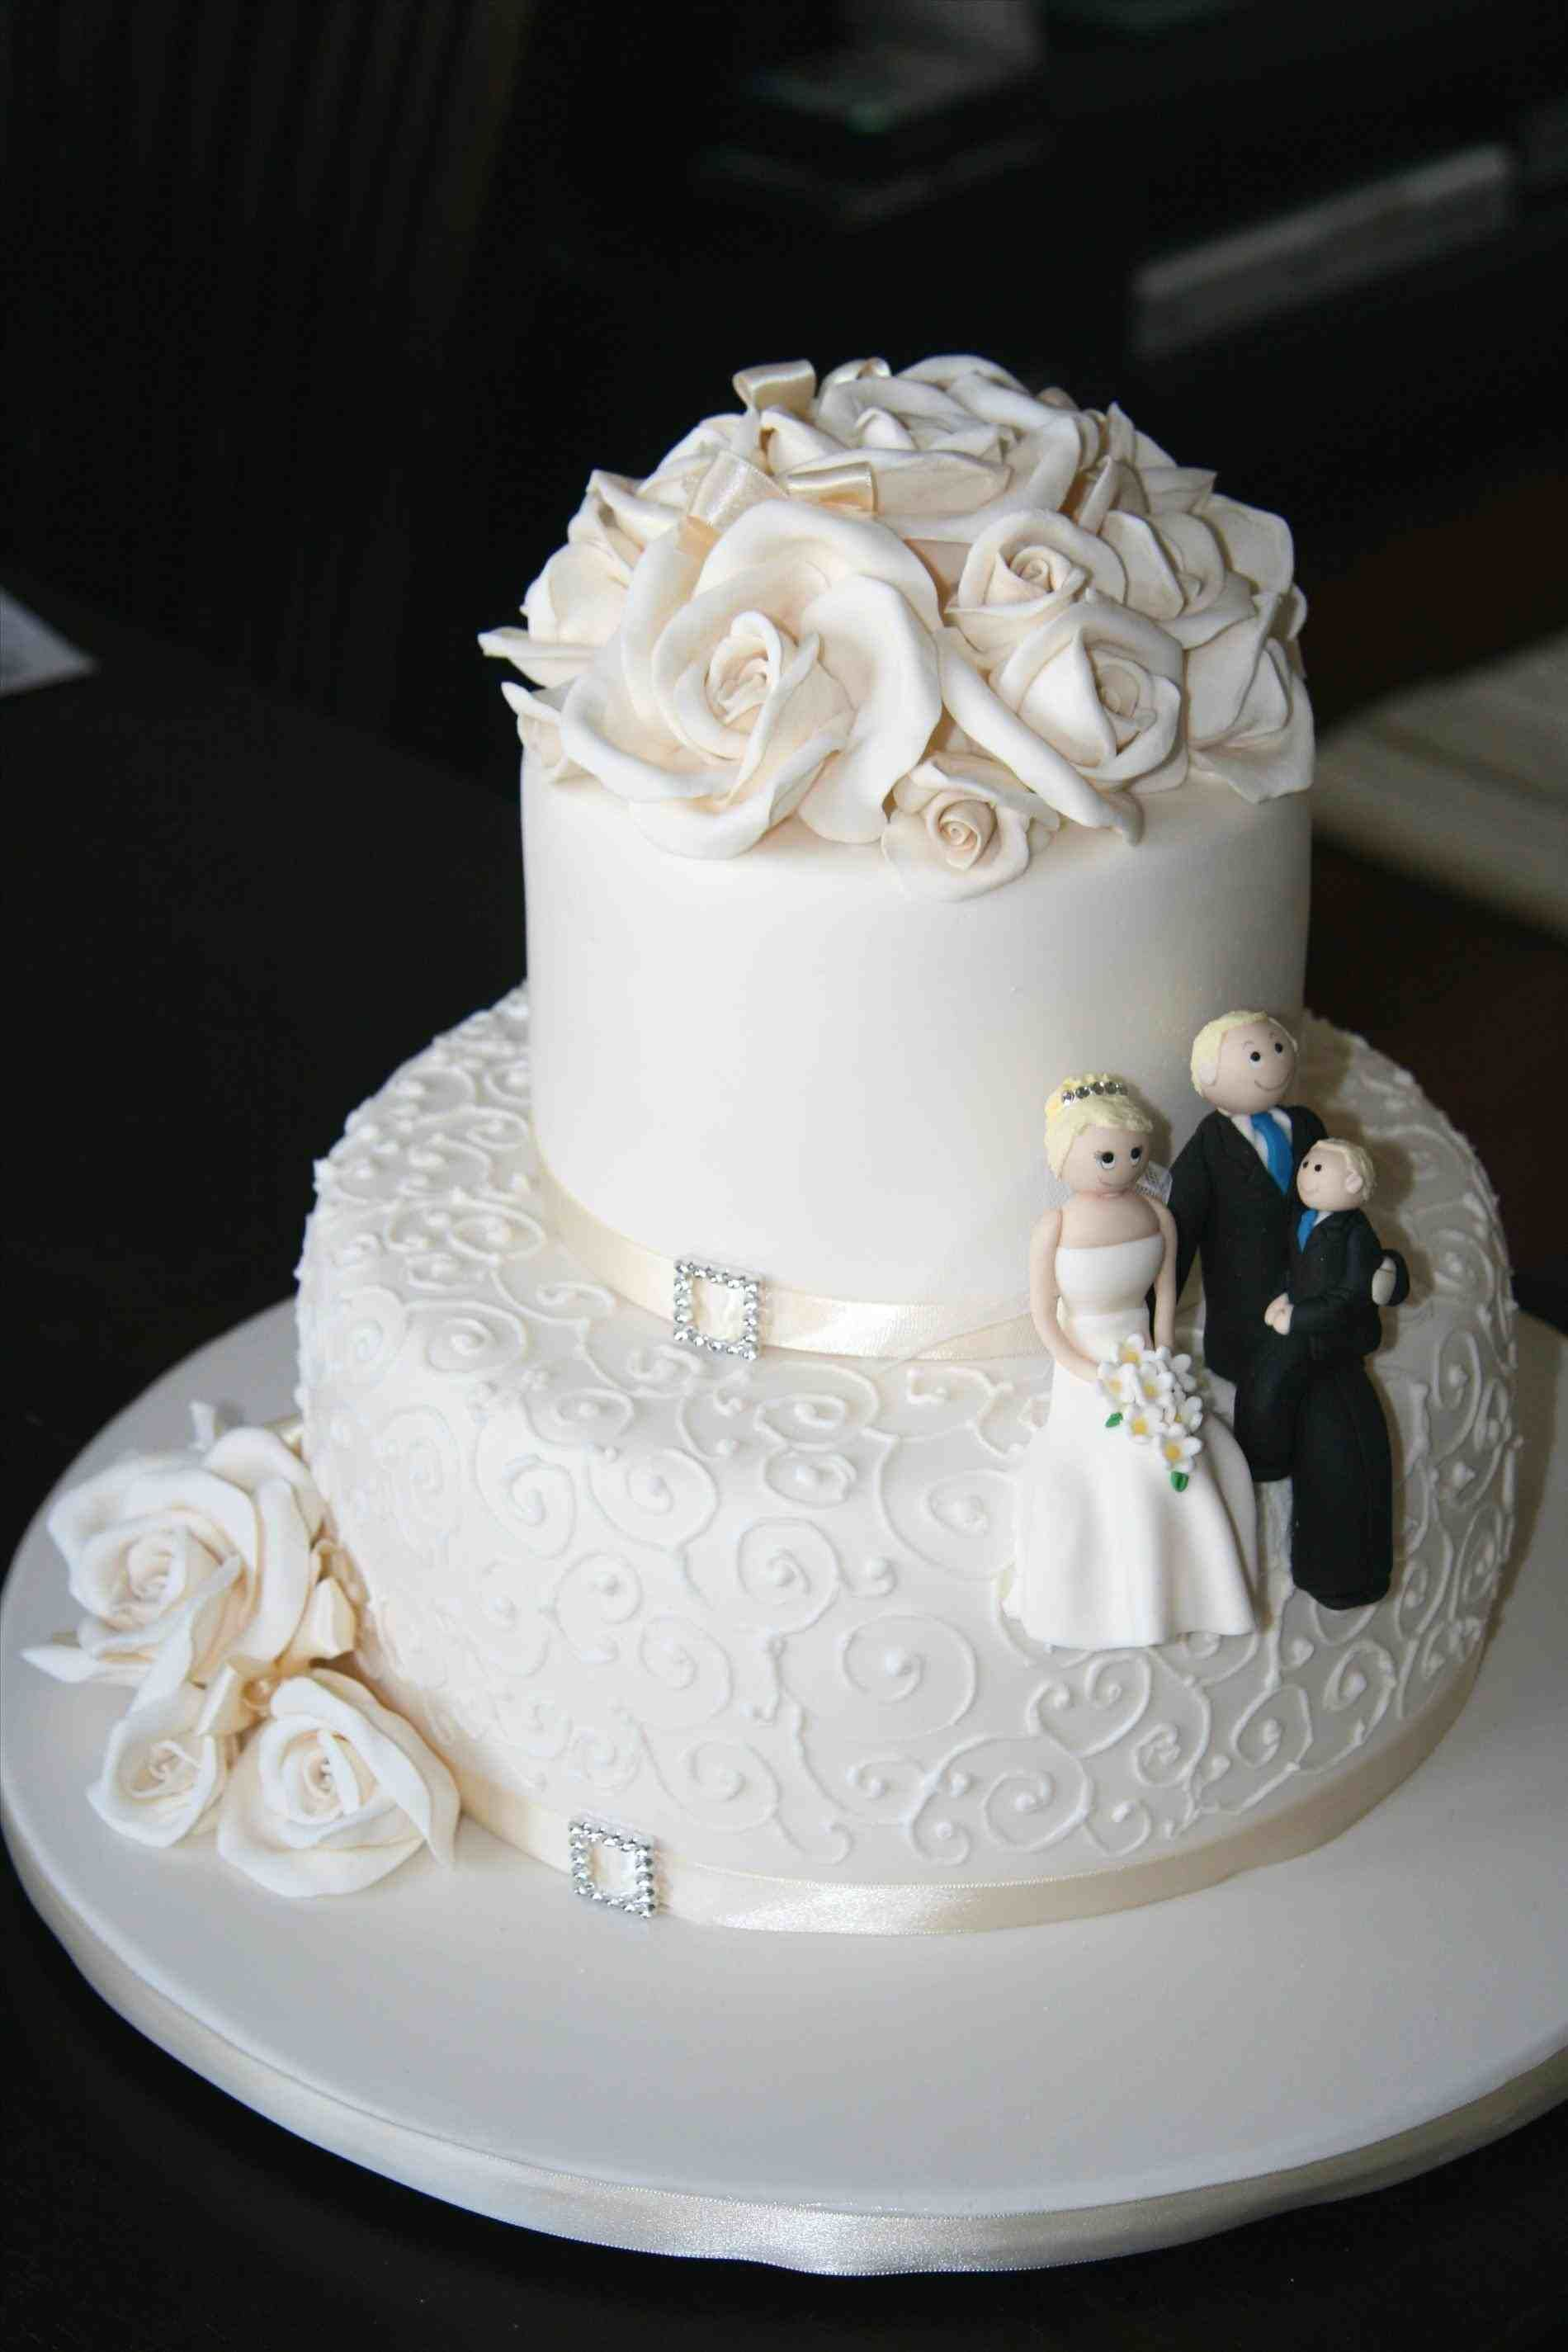 TwoTier Round Wedding Cakes in 2020 (With images